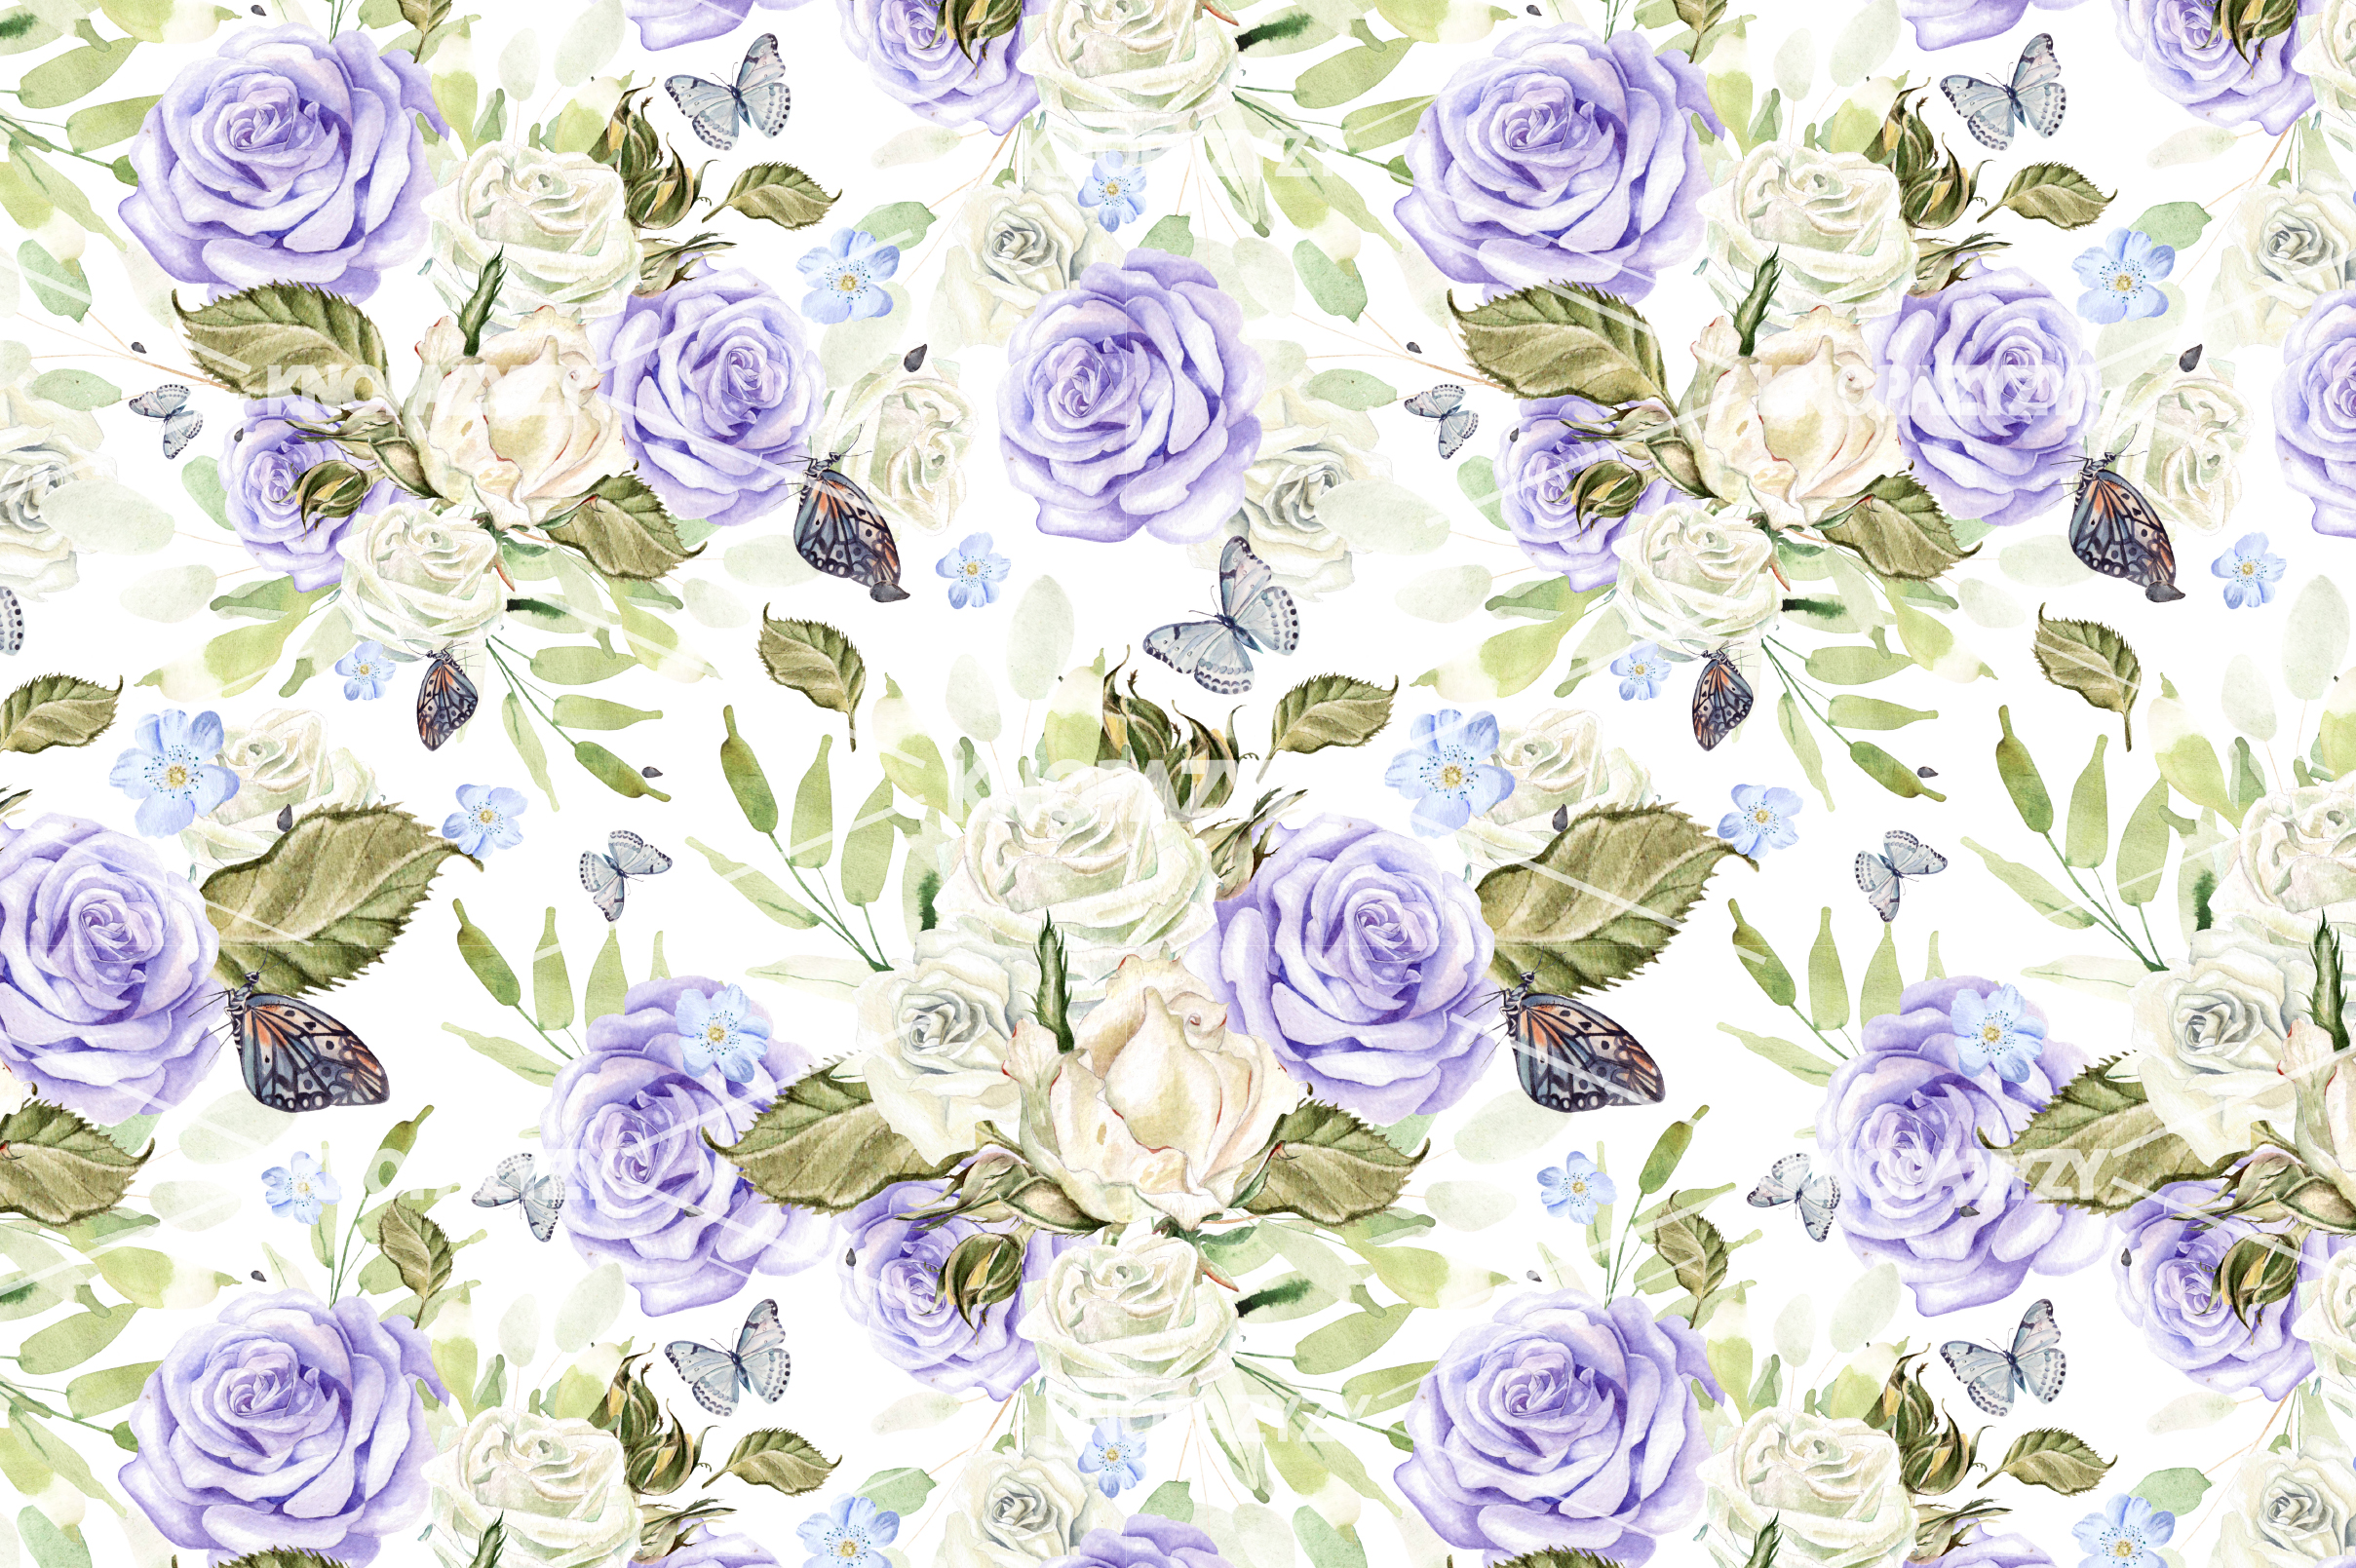 14 Hand drawn watercolor patterns example image 10